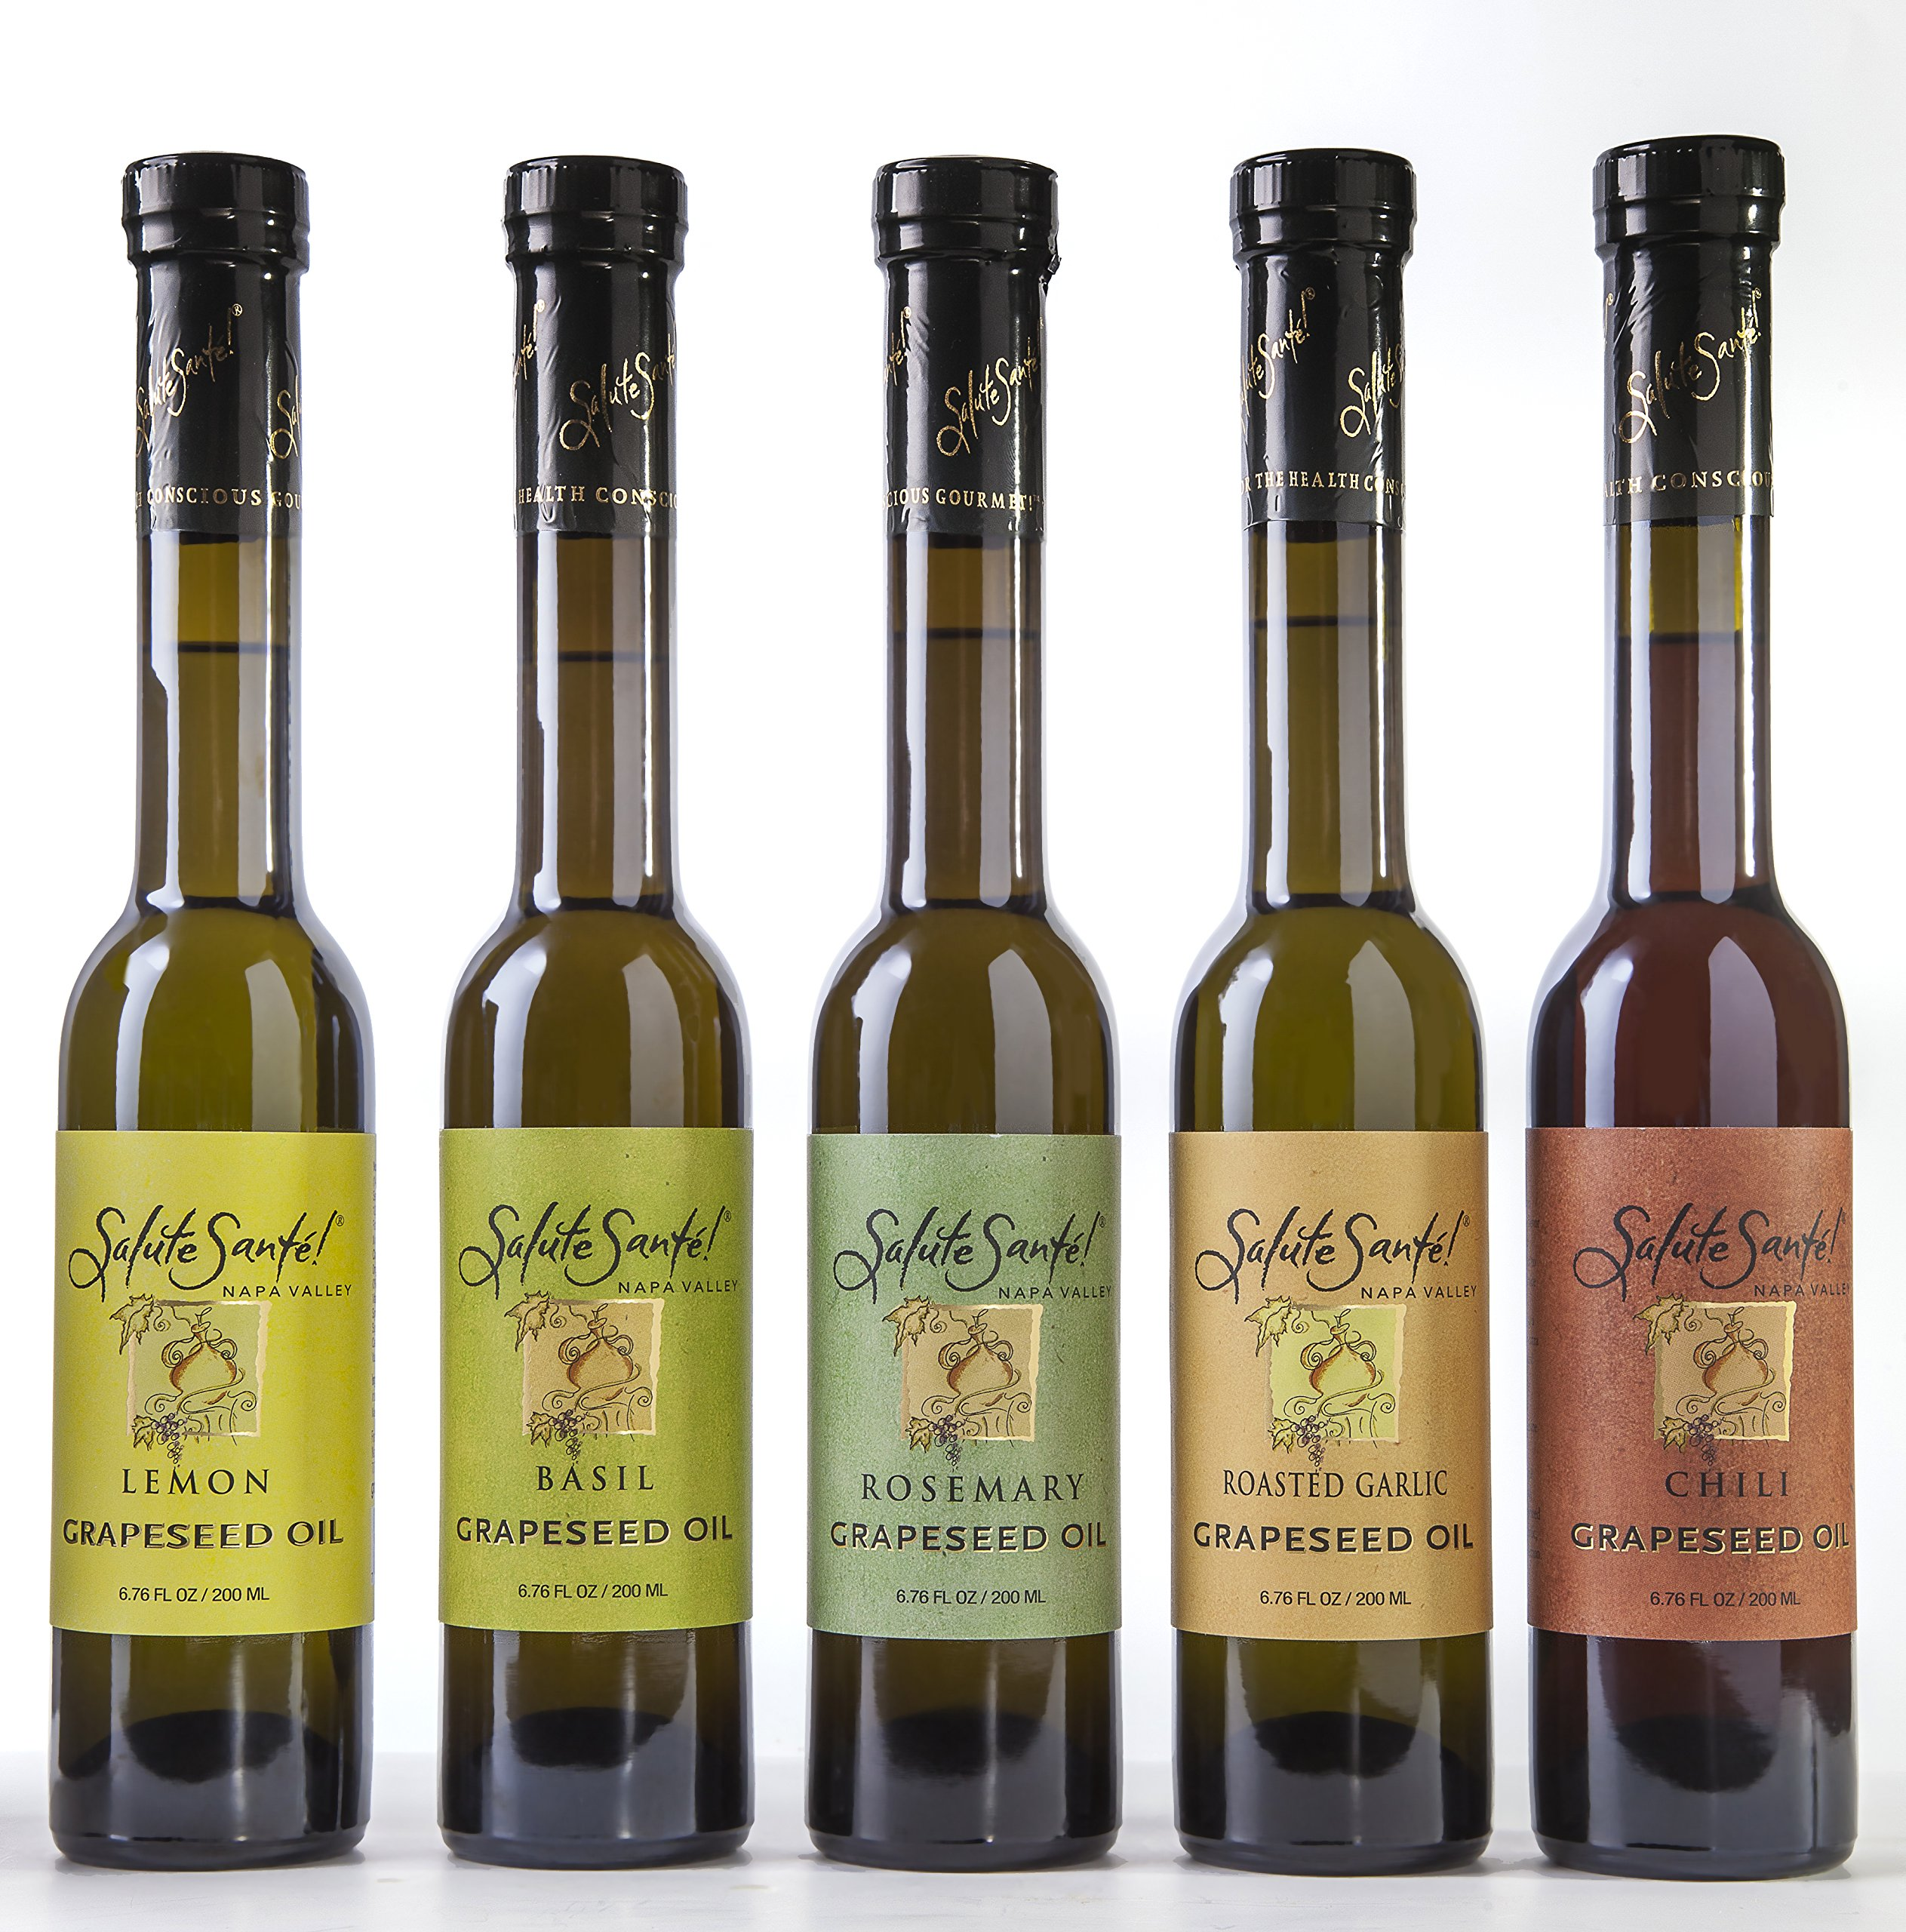 Salute Sante Infused Grapeseed Oil 200 ml (Roasted Garlic) Six Pack